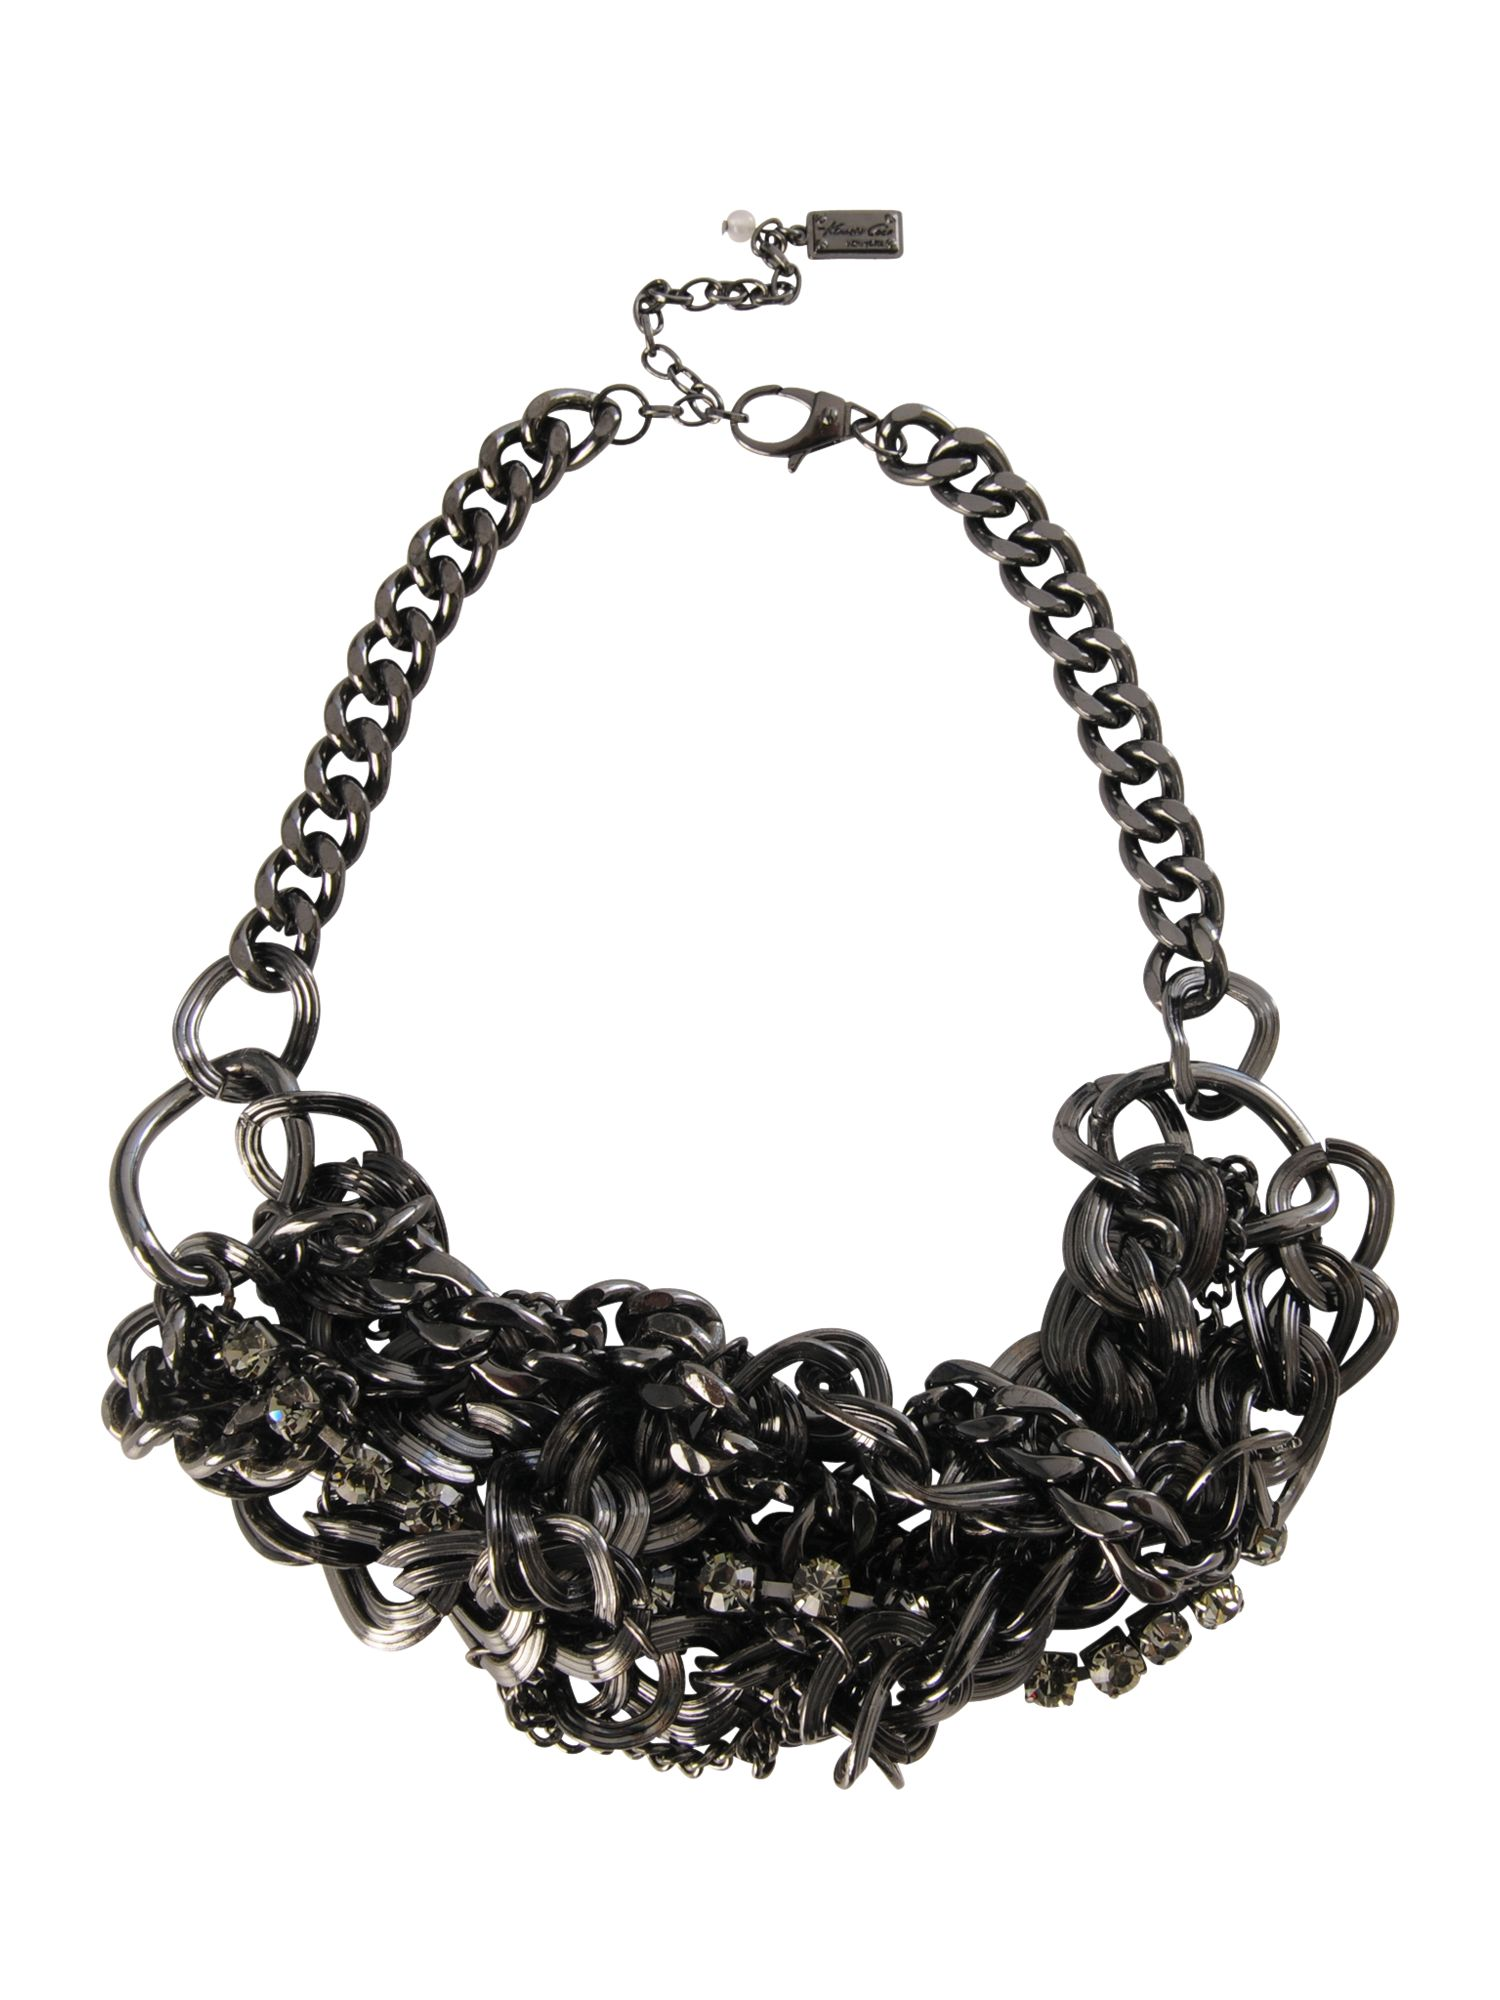 Kenneth Cole Black twist chain necklace